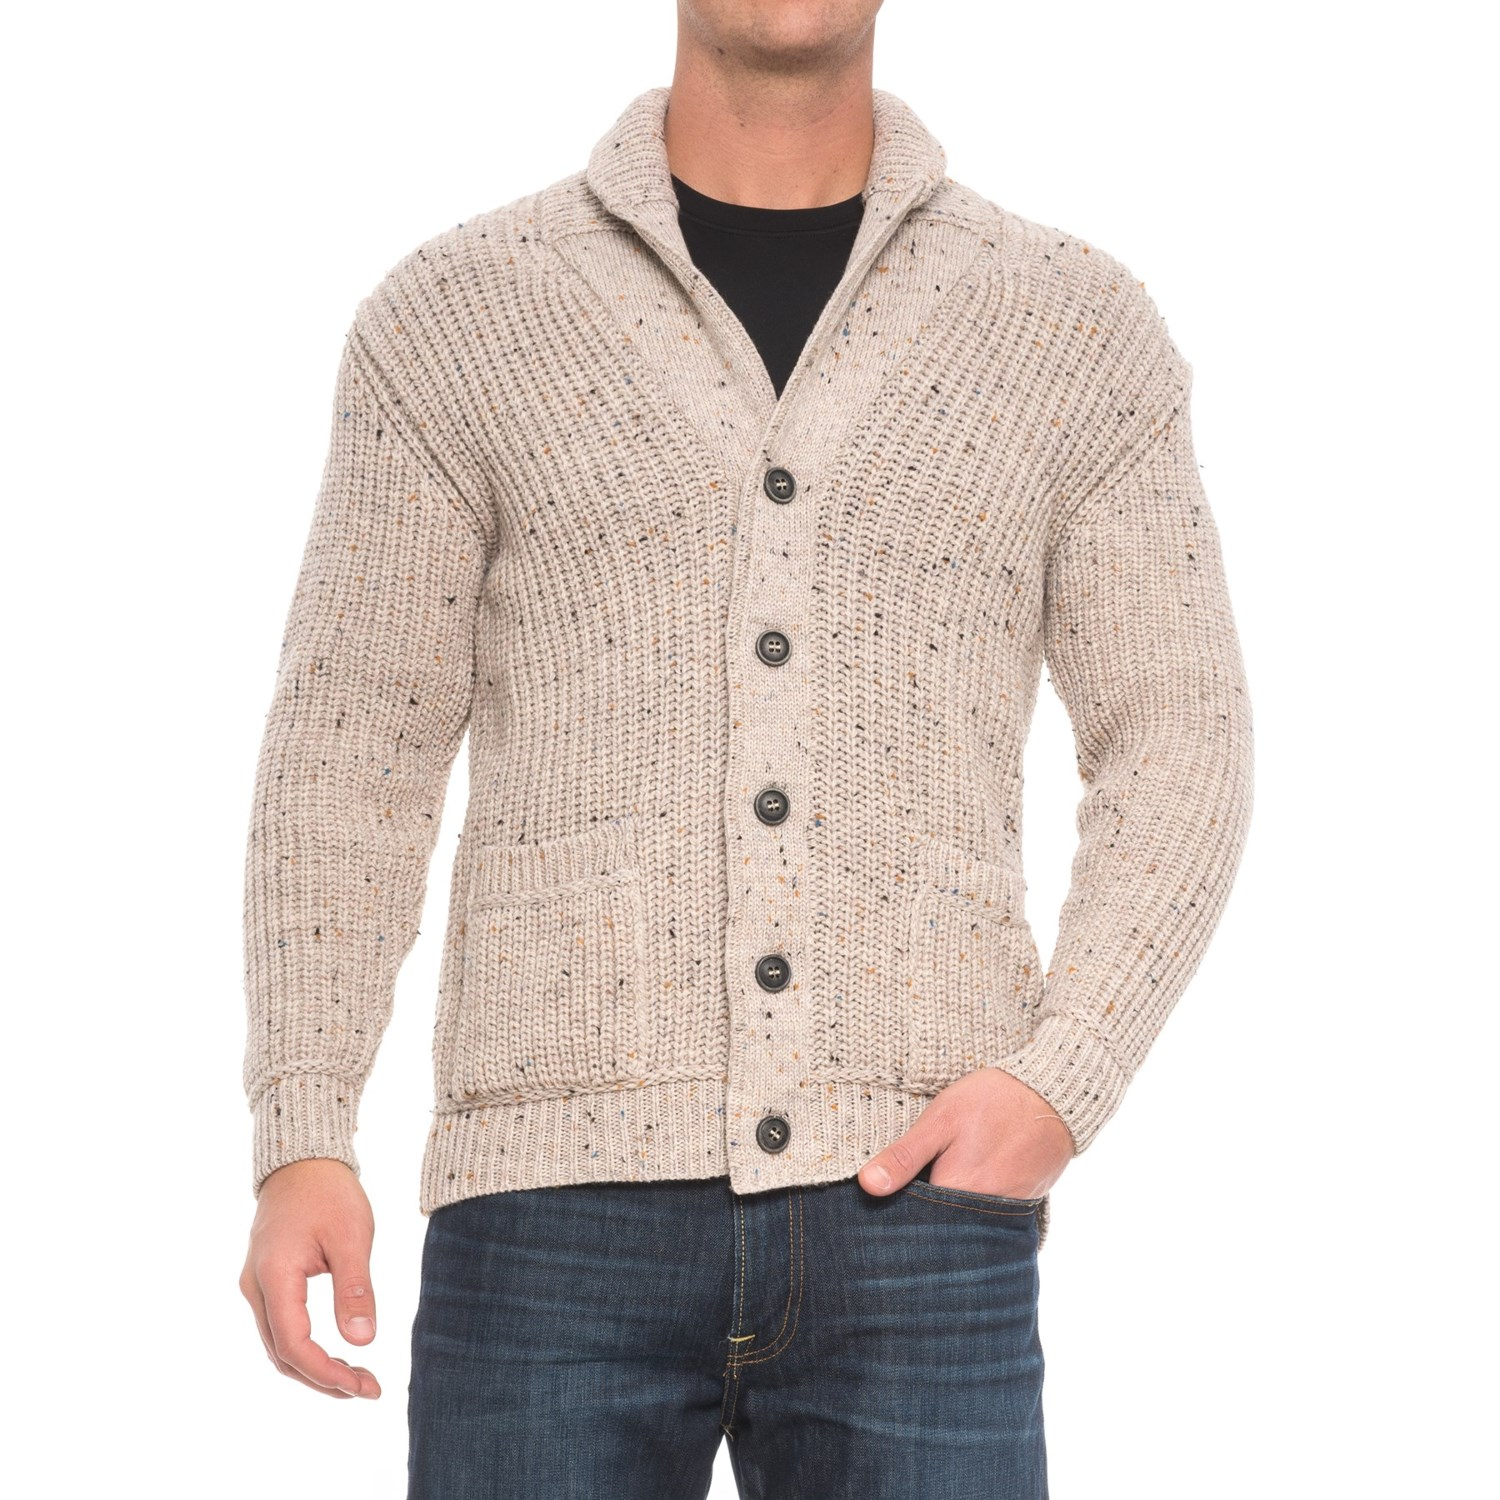 Inis crafts ribbed shawl cardigan sweater for men save 61 for Inis crafts sweater price